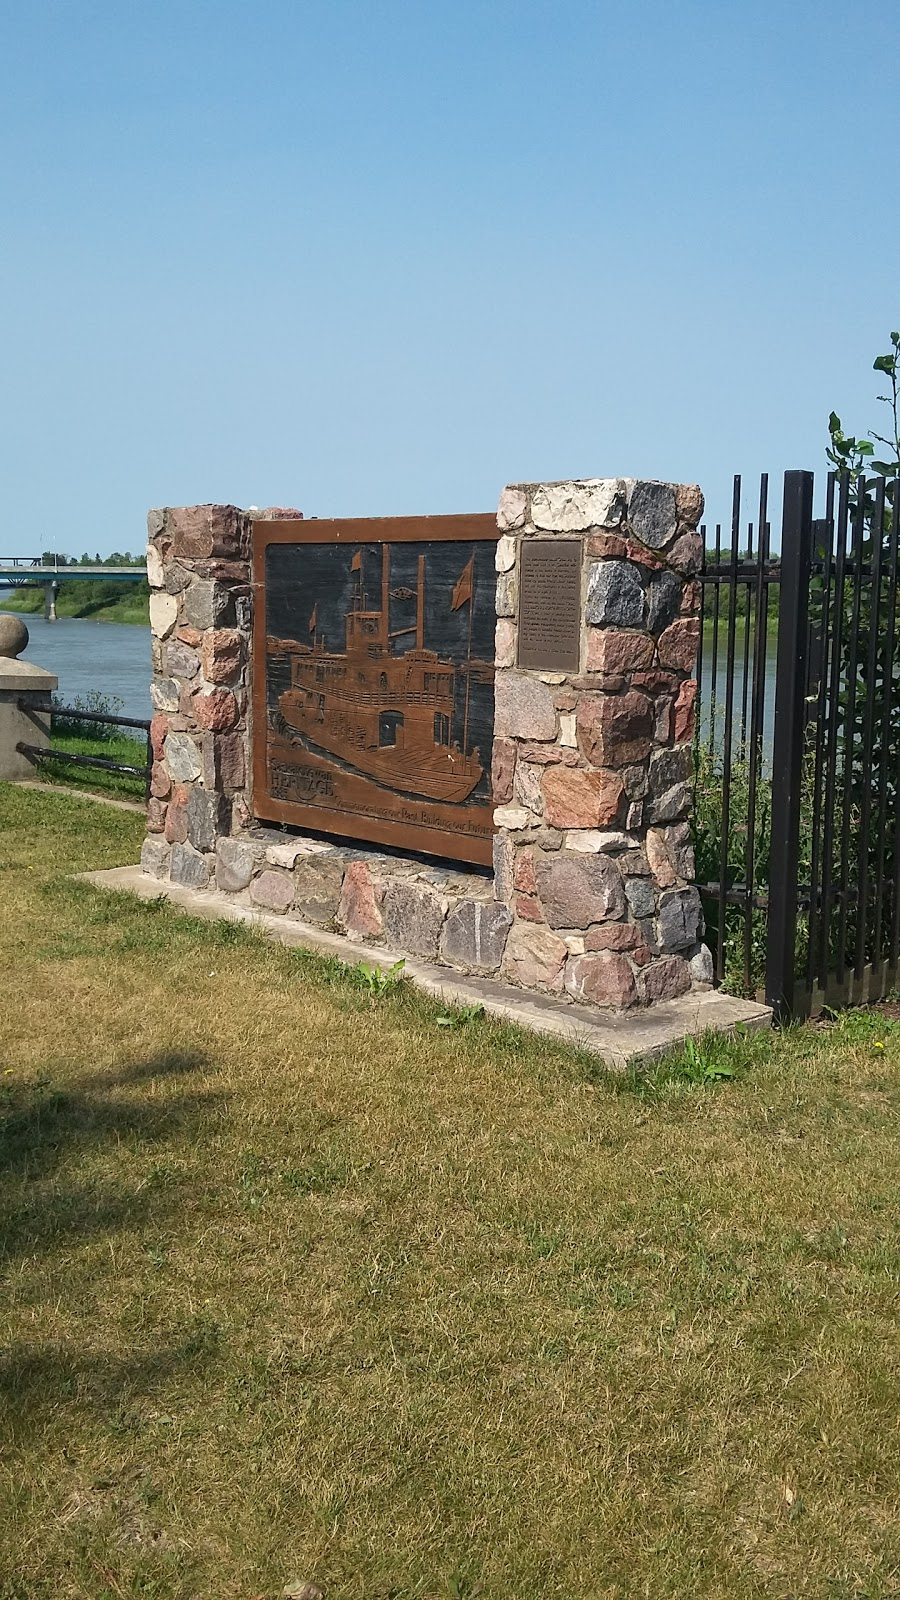 Prince Albert Historical Museum   museum   10 River St, Prince Albert, SK S6V 8A9, Canada   3067642992 OR +1 306-764-2992